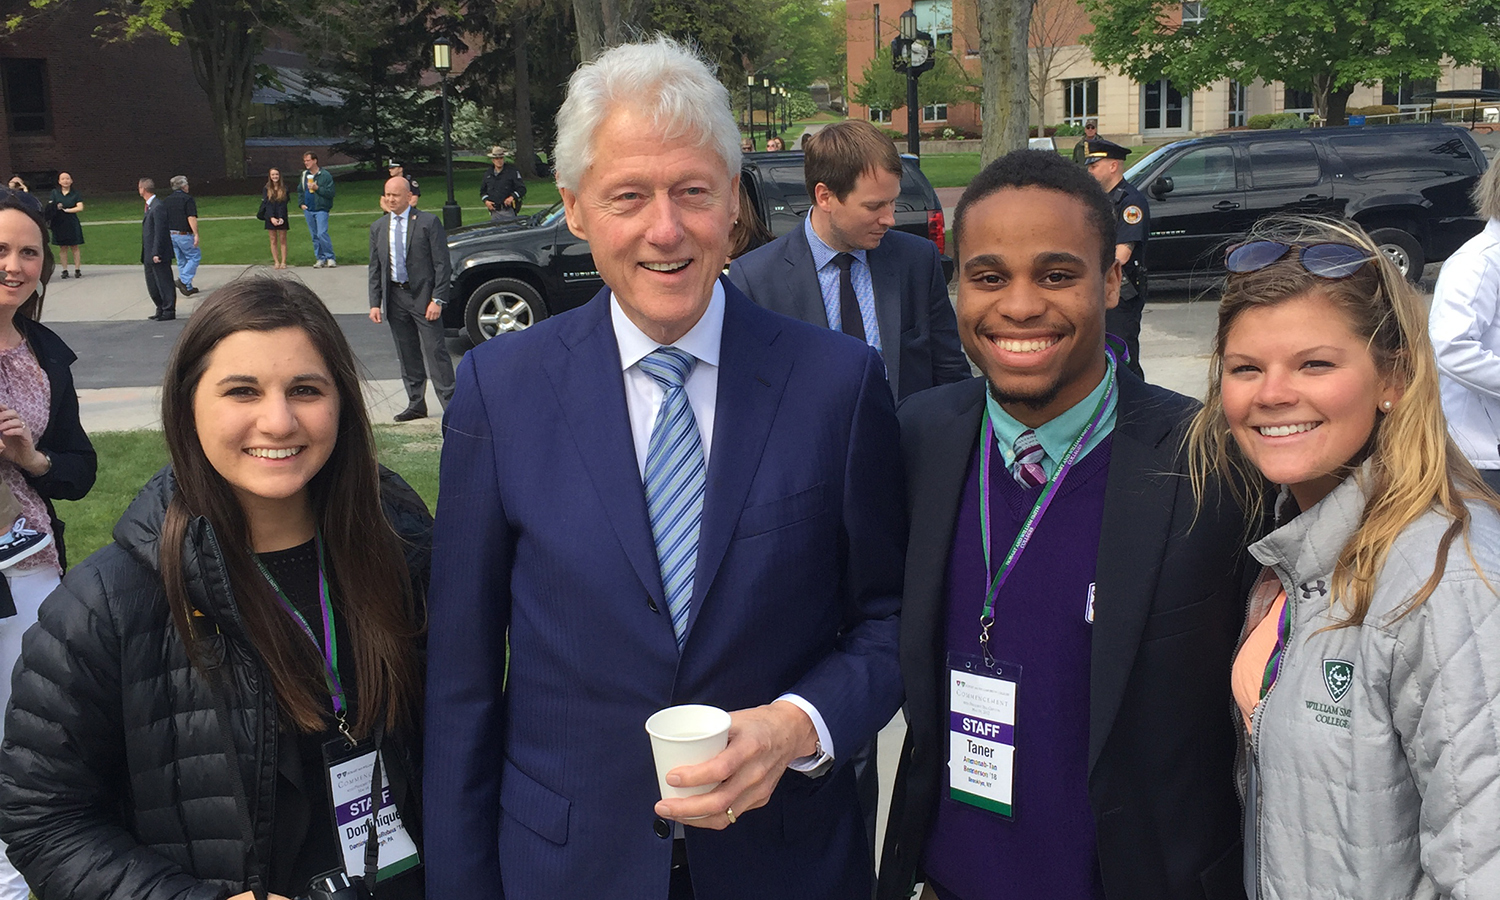 Dominique DeReubis '18, Ammenab-Taner Bennerson '18 and  Annie O'Brien '18 pose for a photo with President Bill Clinton before Commencement on Sunday.